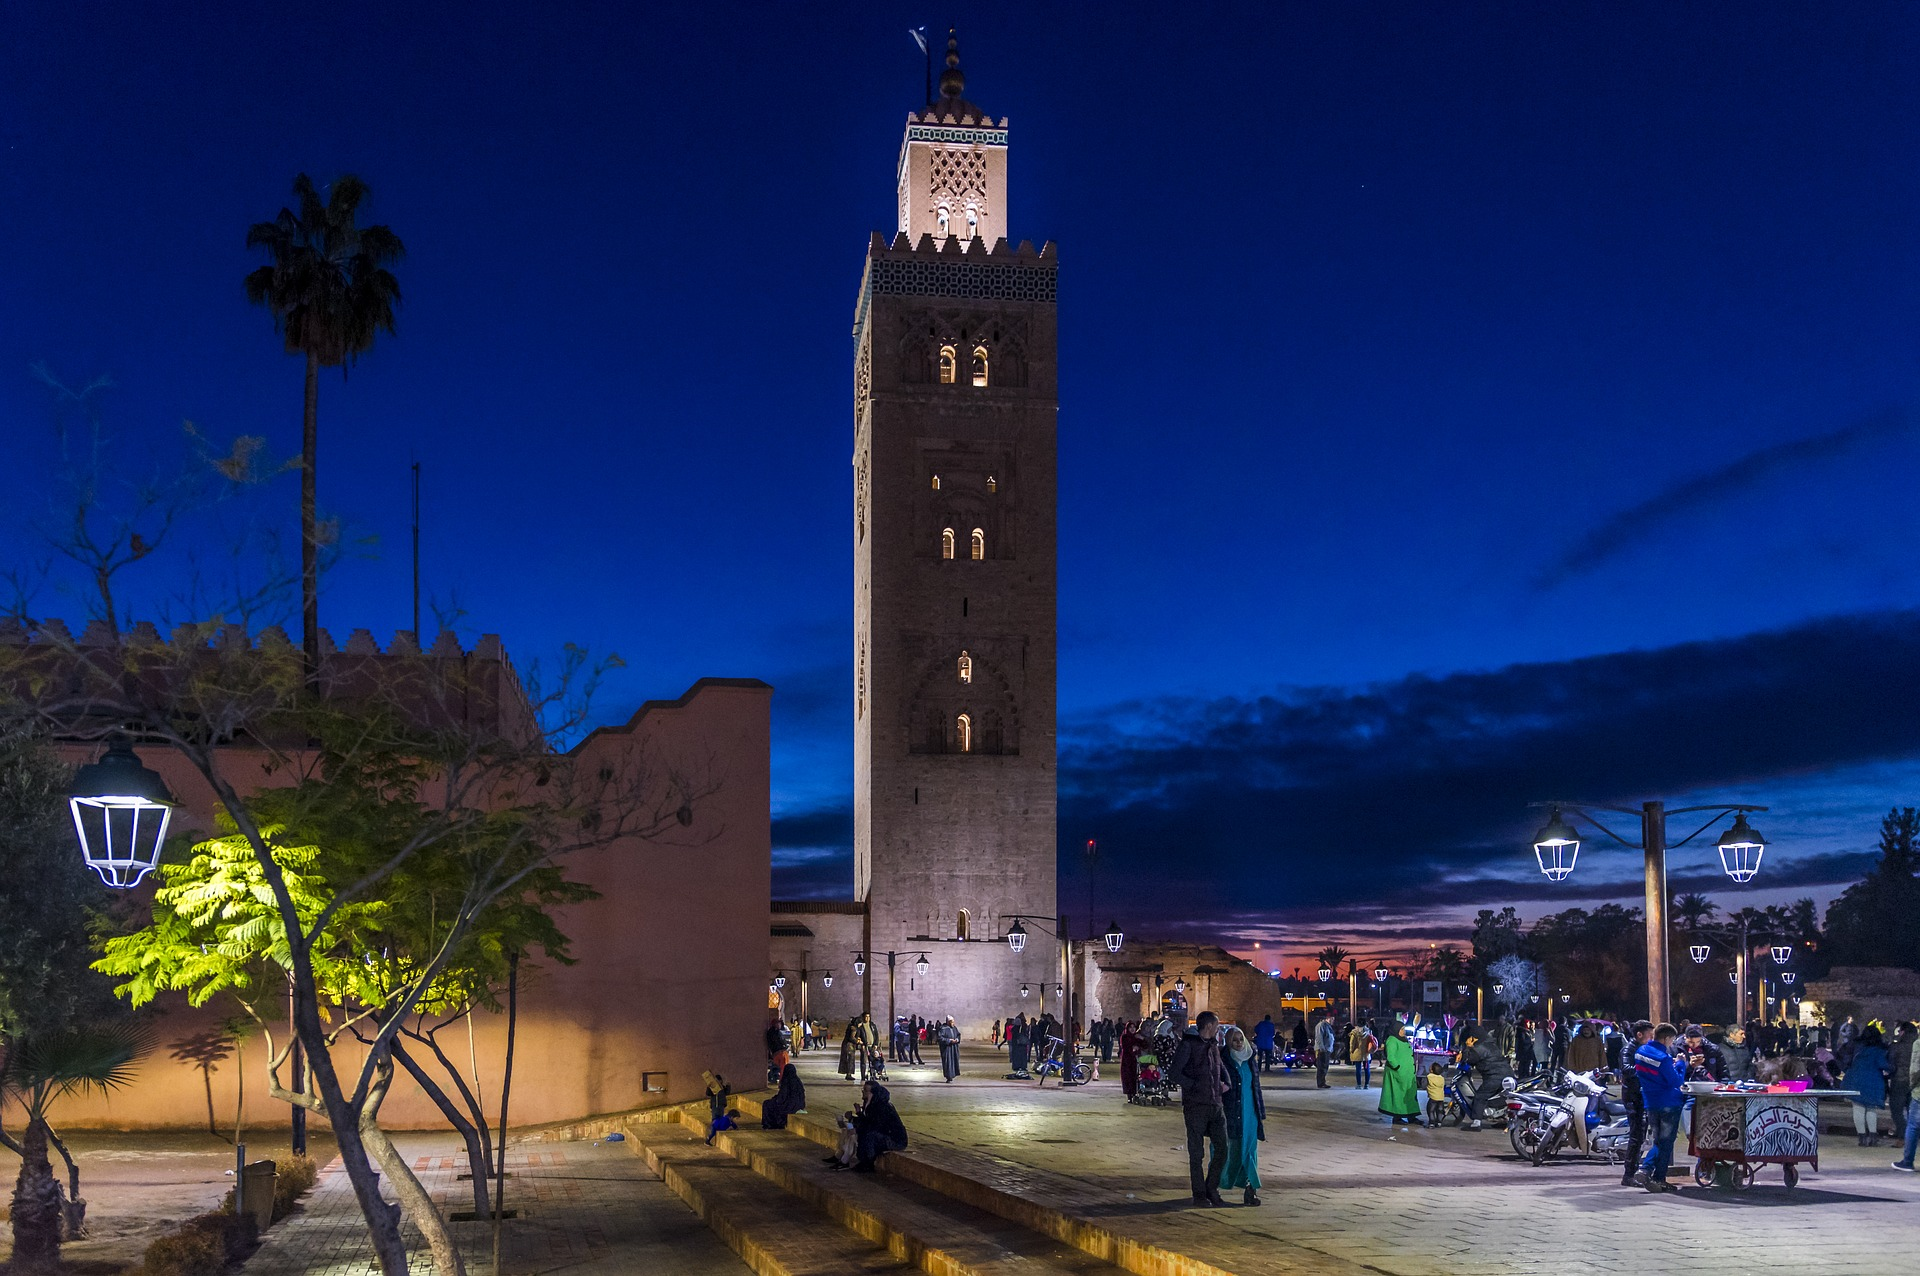 WAPMU 1st Annual Meeting and Interventional Pain Workshop - North Africa and Iberian Peninsula, Marrakech, Morocco